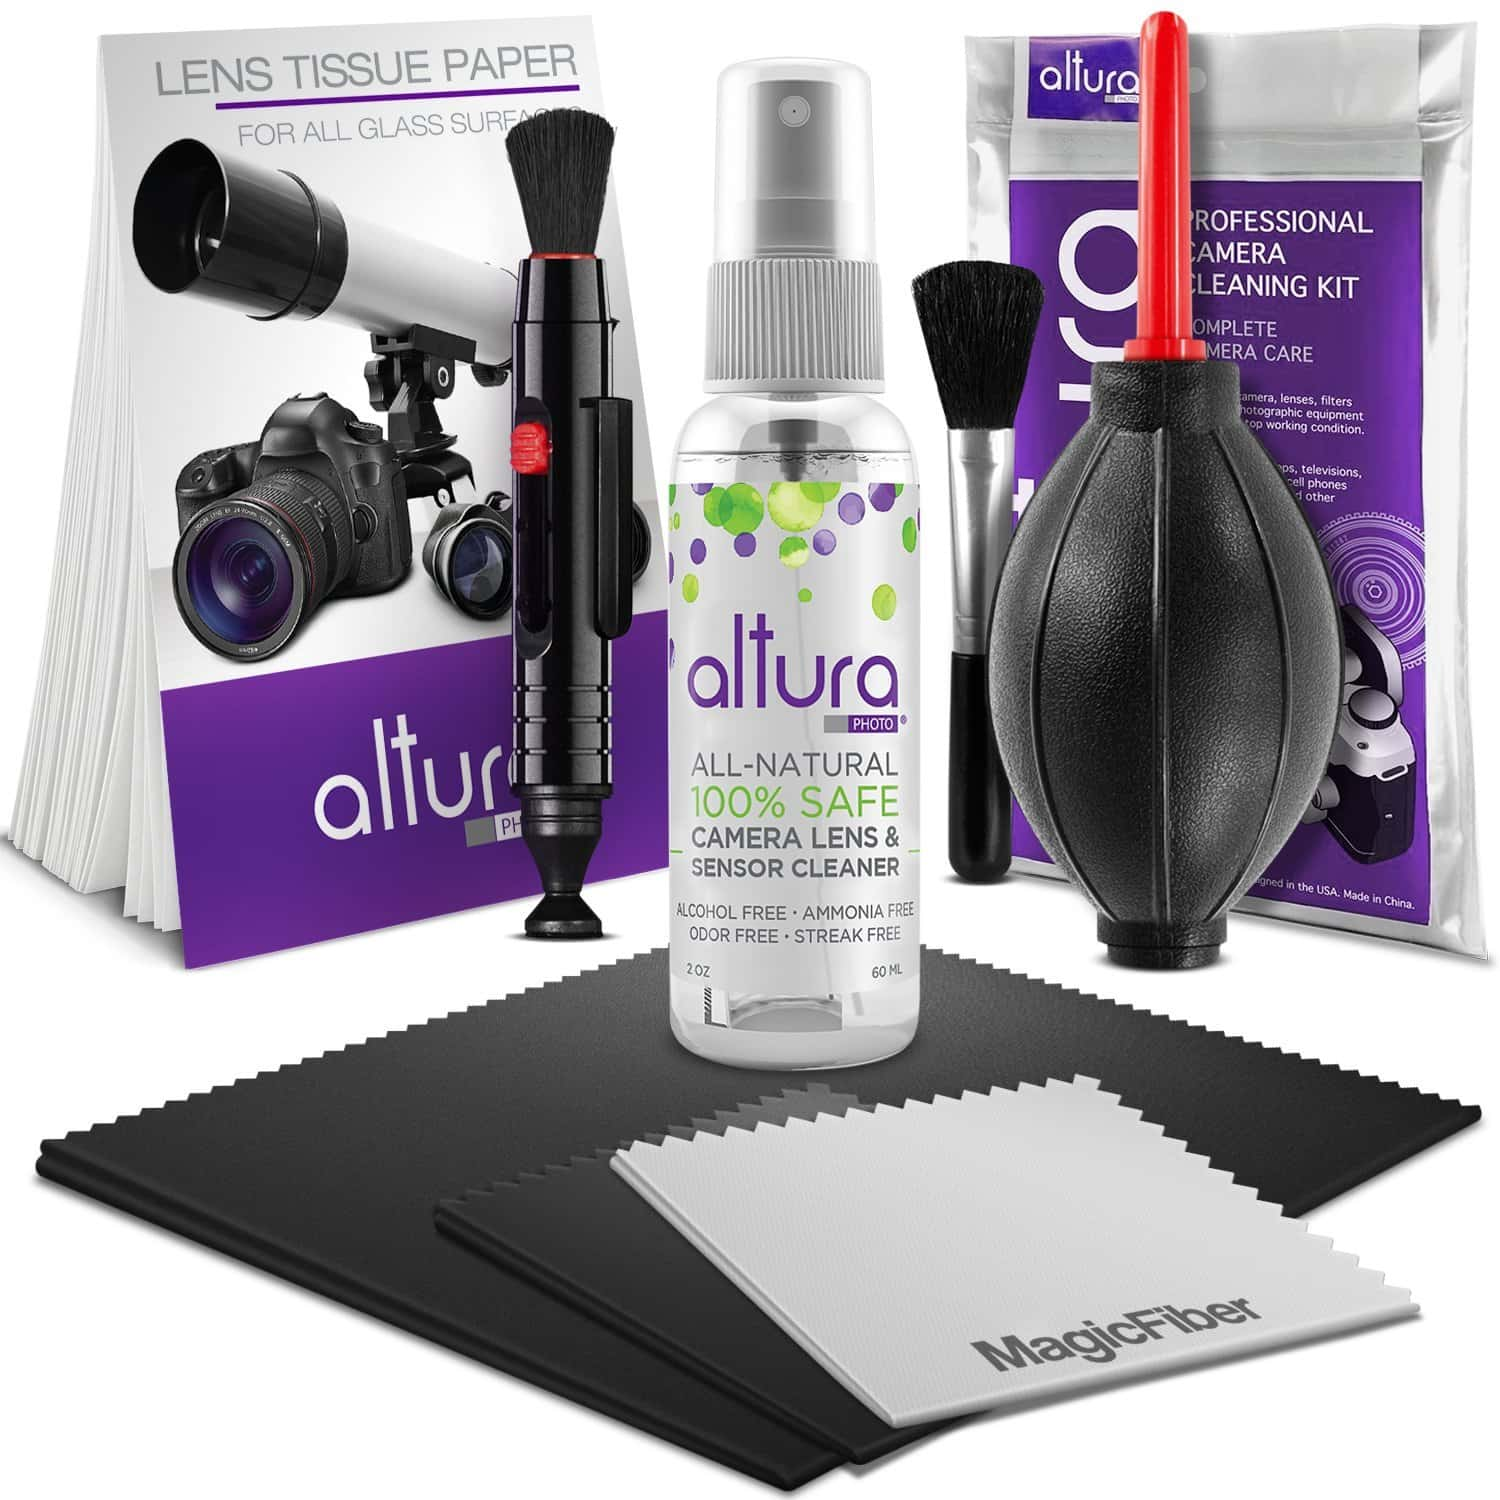 alturacleaningkit1 min image